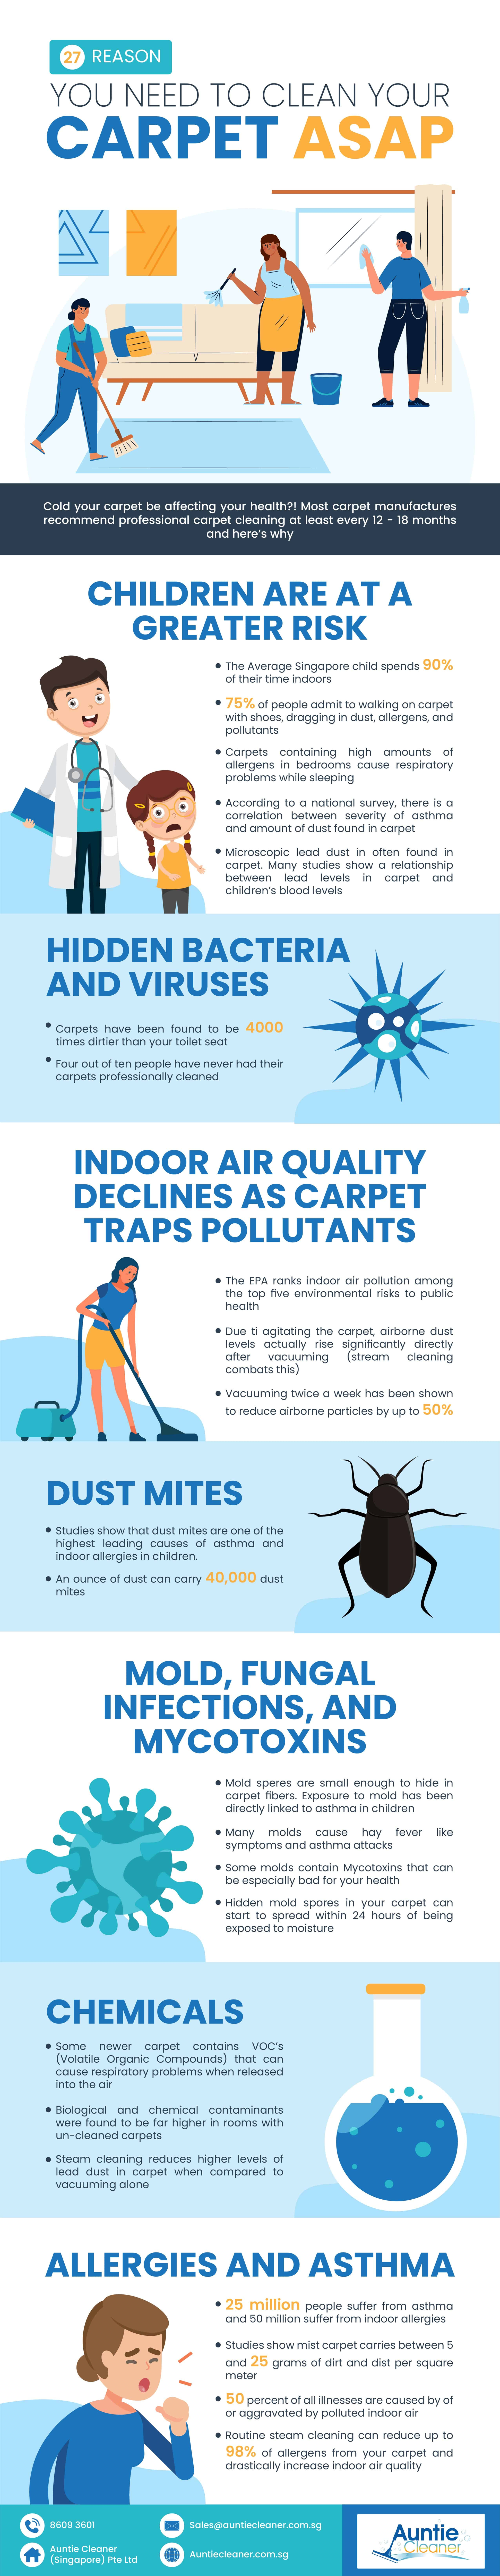 Infographic - Why You Need To Clean Your Carpet